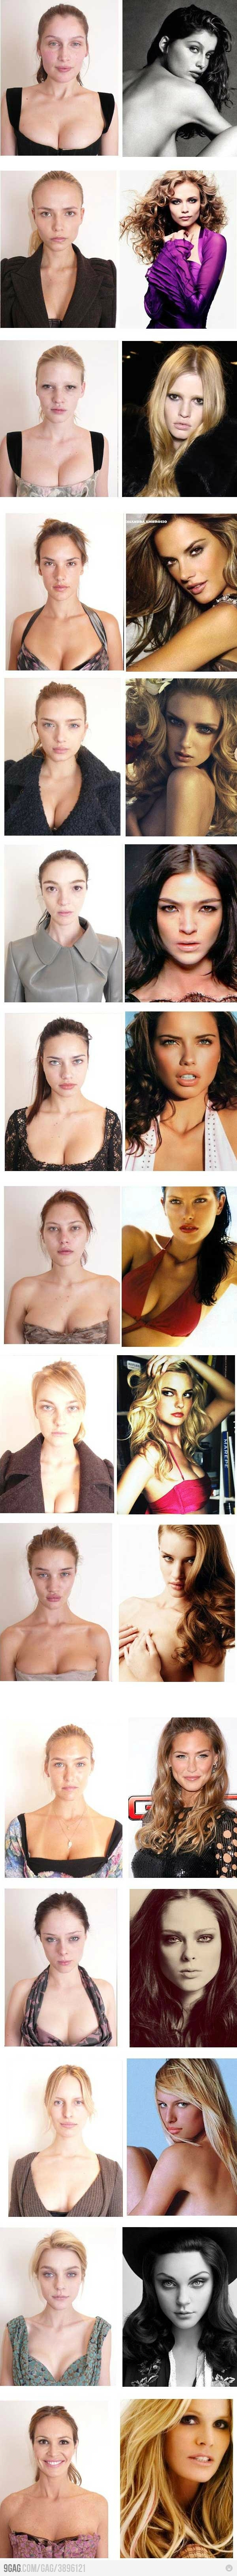 Should be eye opening for women out there who idolize what these models look like in magazines. Look at the befores!